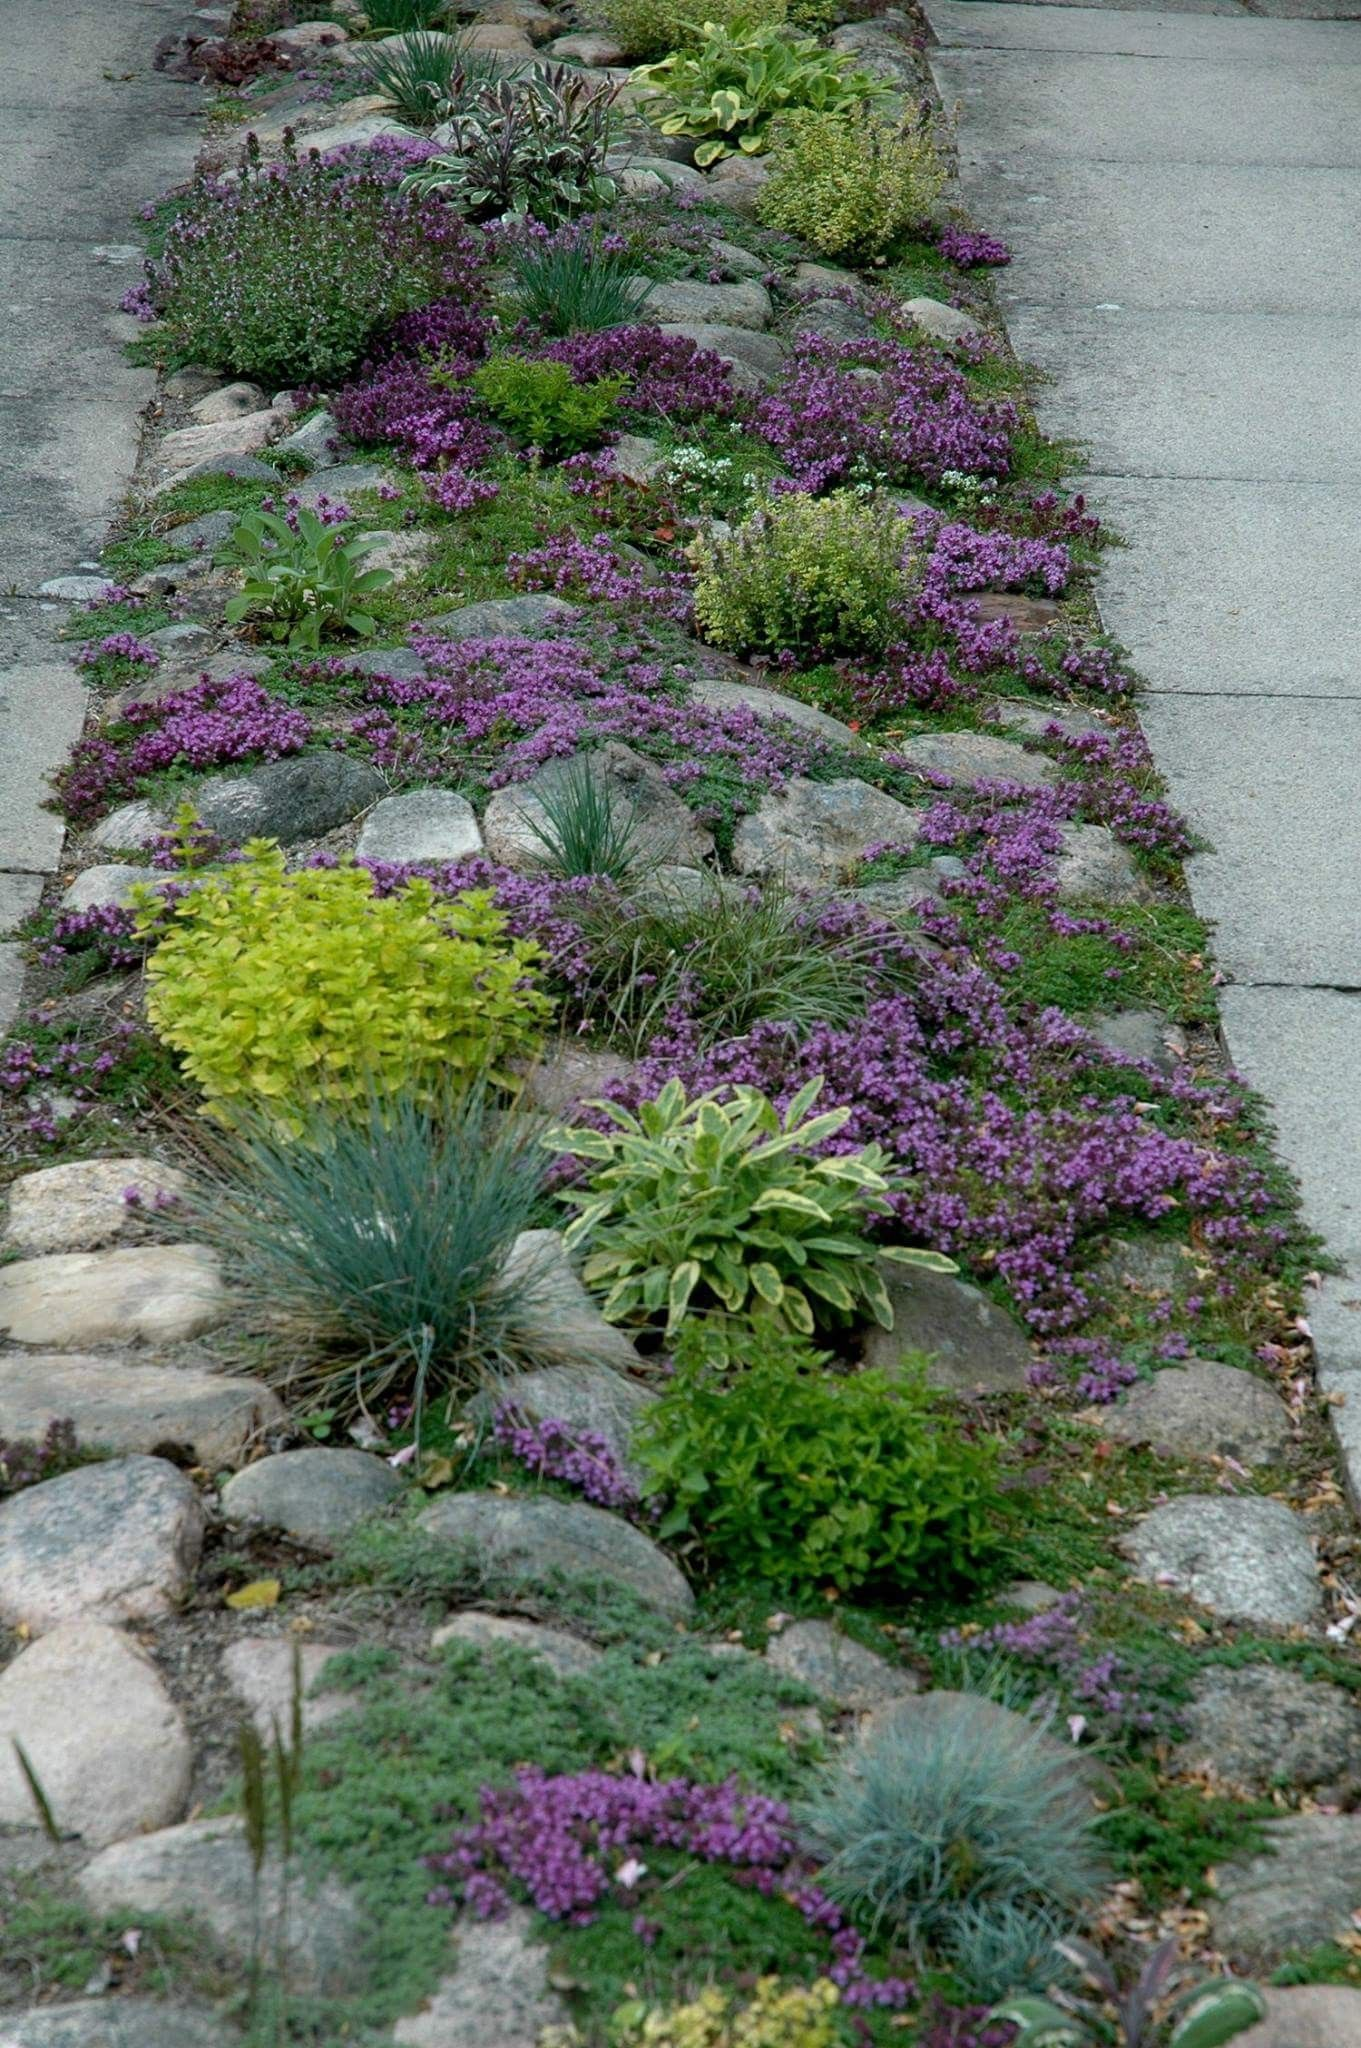 Pin by melody krumrey on gardening pinterest gardens yards and cheap landscaping ideas flower gardening yard ideas driveways outdoor living middle ribbon cacti paths izmirmasajfo